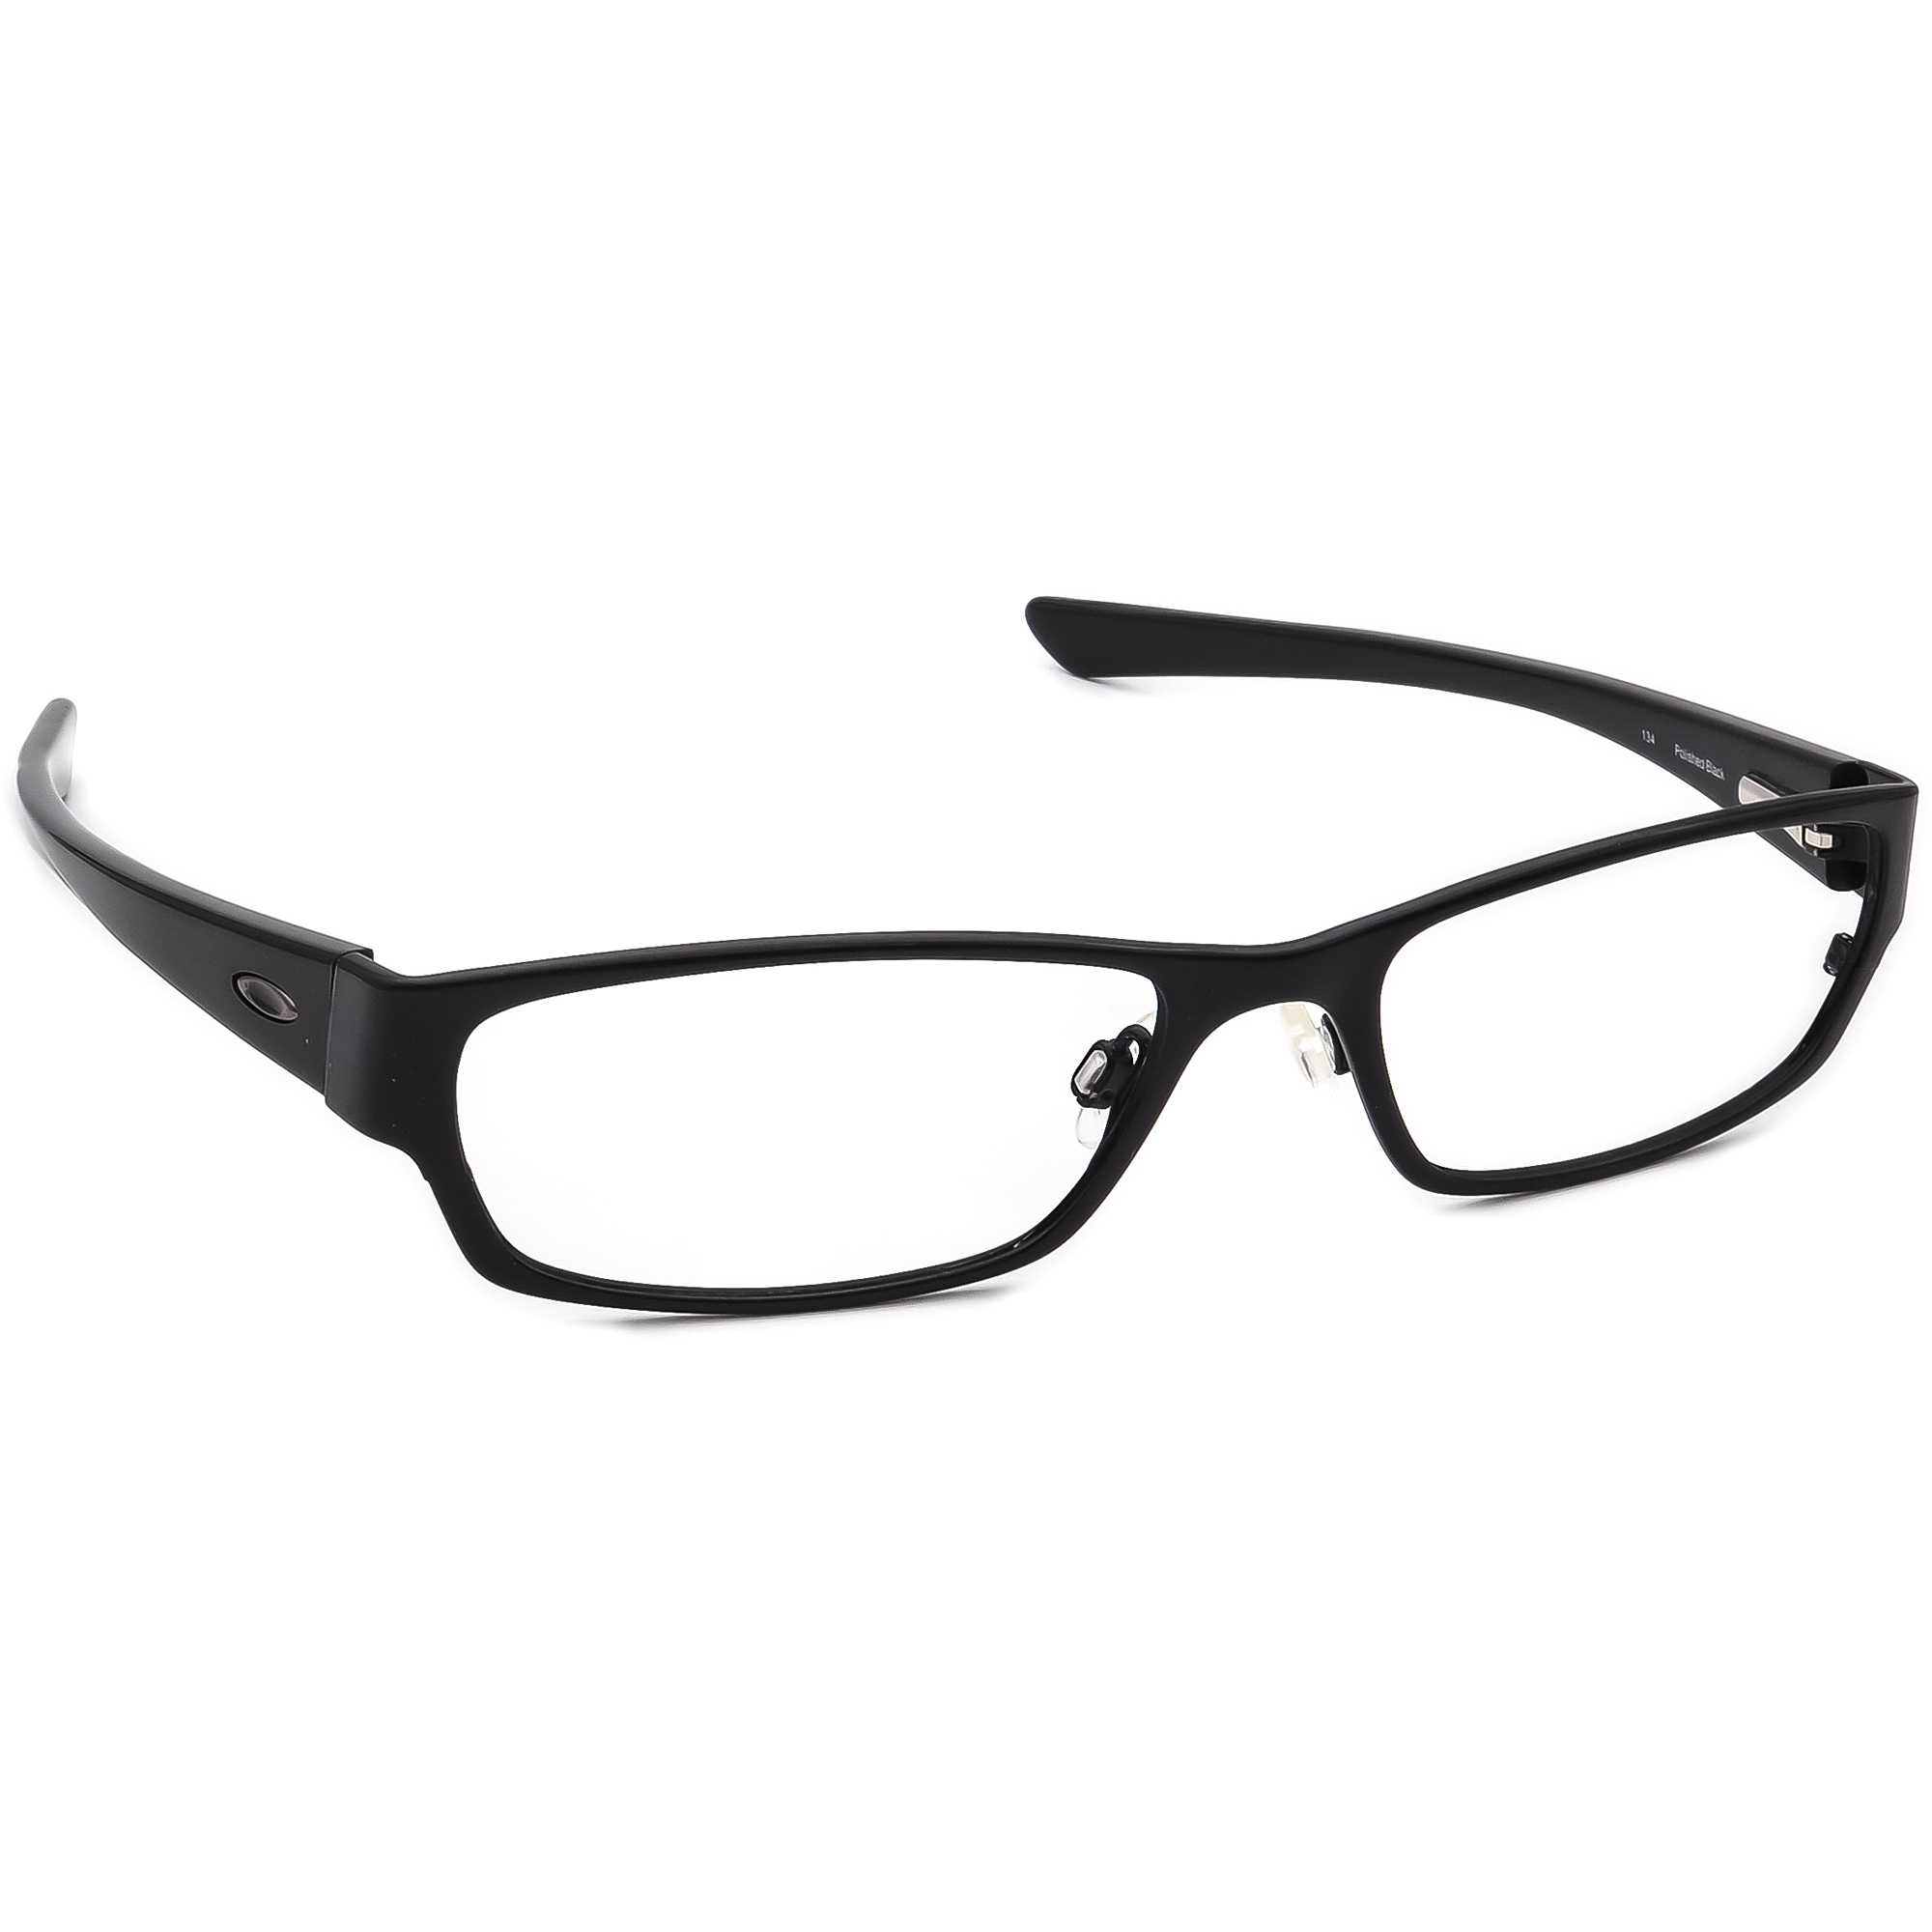 Oakley Fate 4.0 Eyeglasses